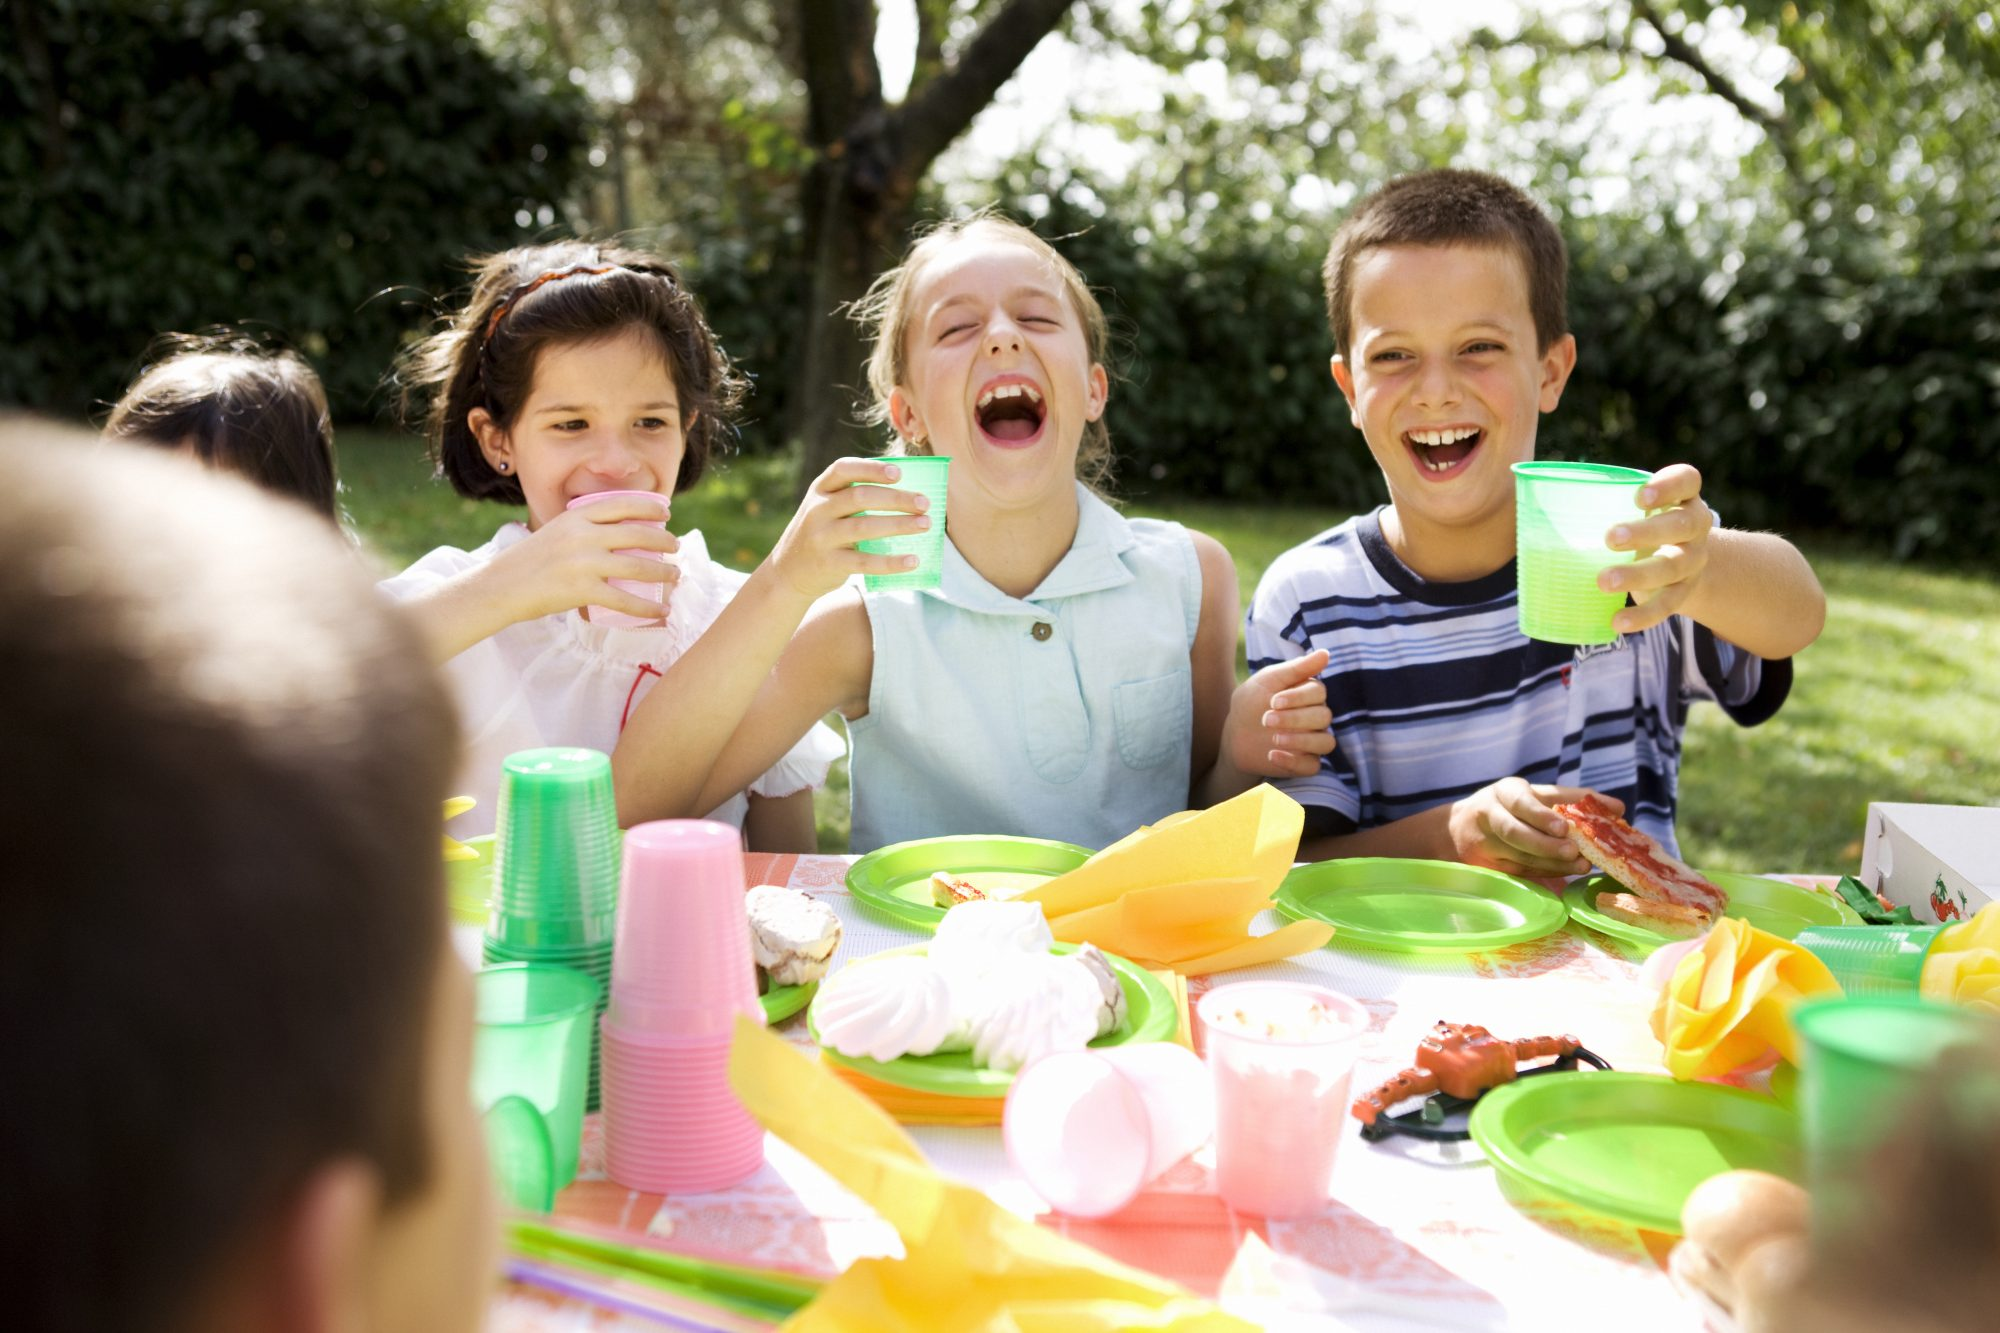 kids having party at table outdoors